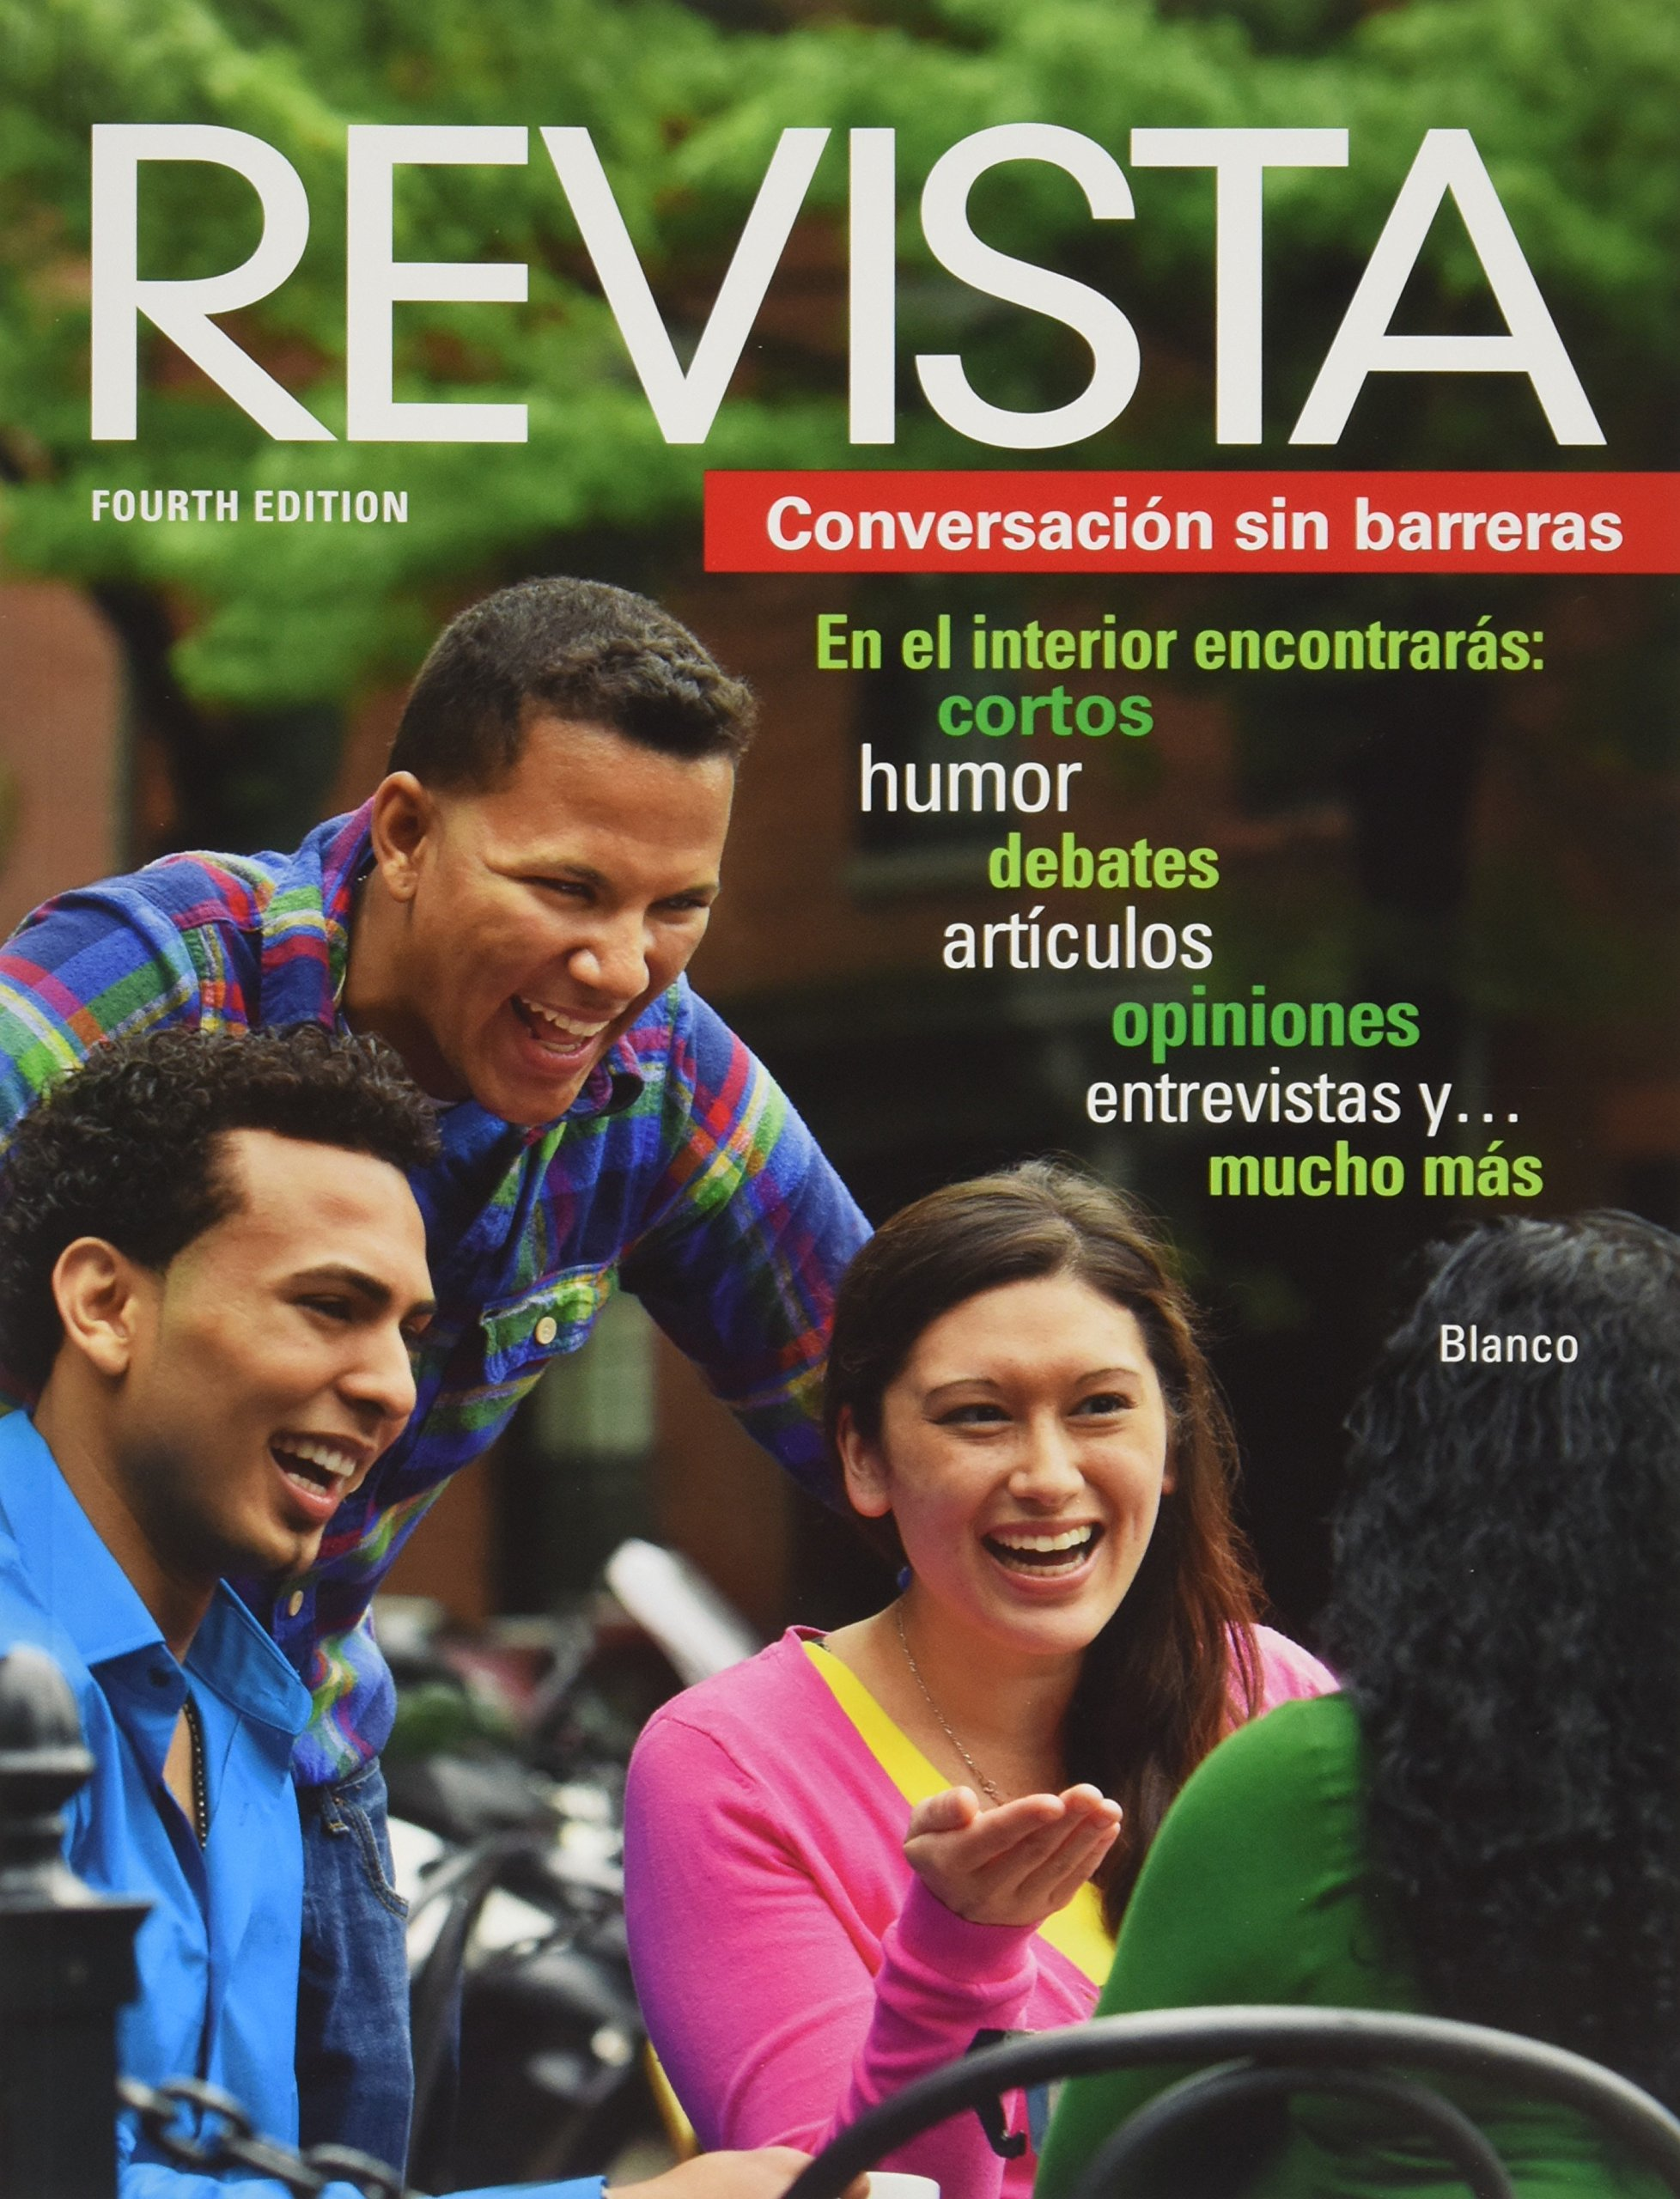 Revista conversacin sin barreras 4th edition jos a blanco revista conversacin sin barreras 4th edition jos a blanco 9781618570765 amazon books fandeluxe Images